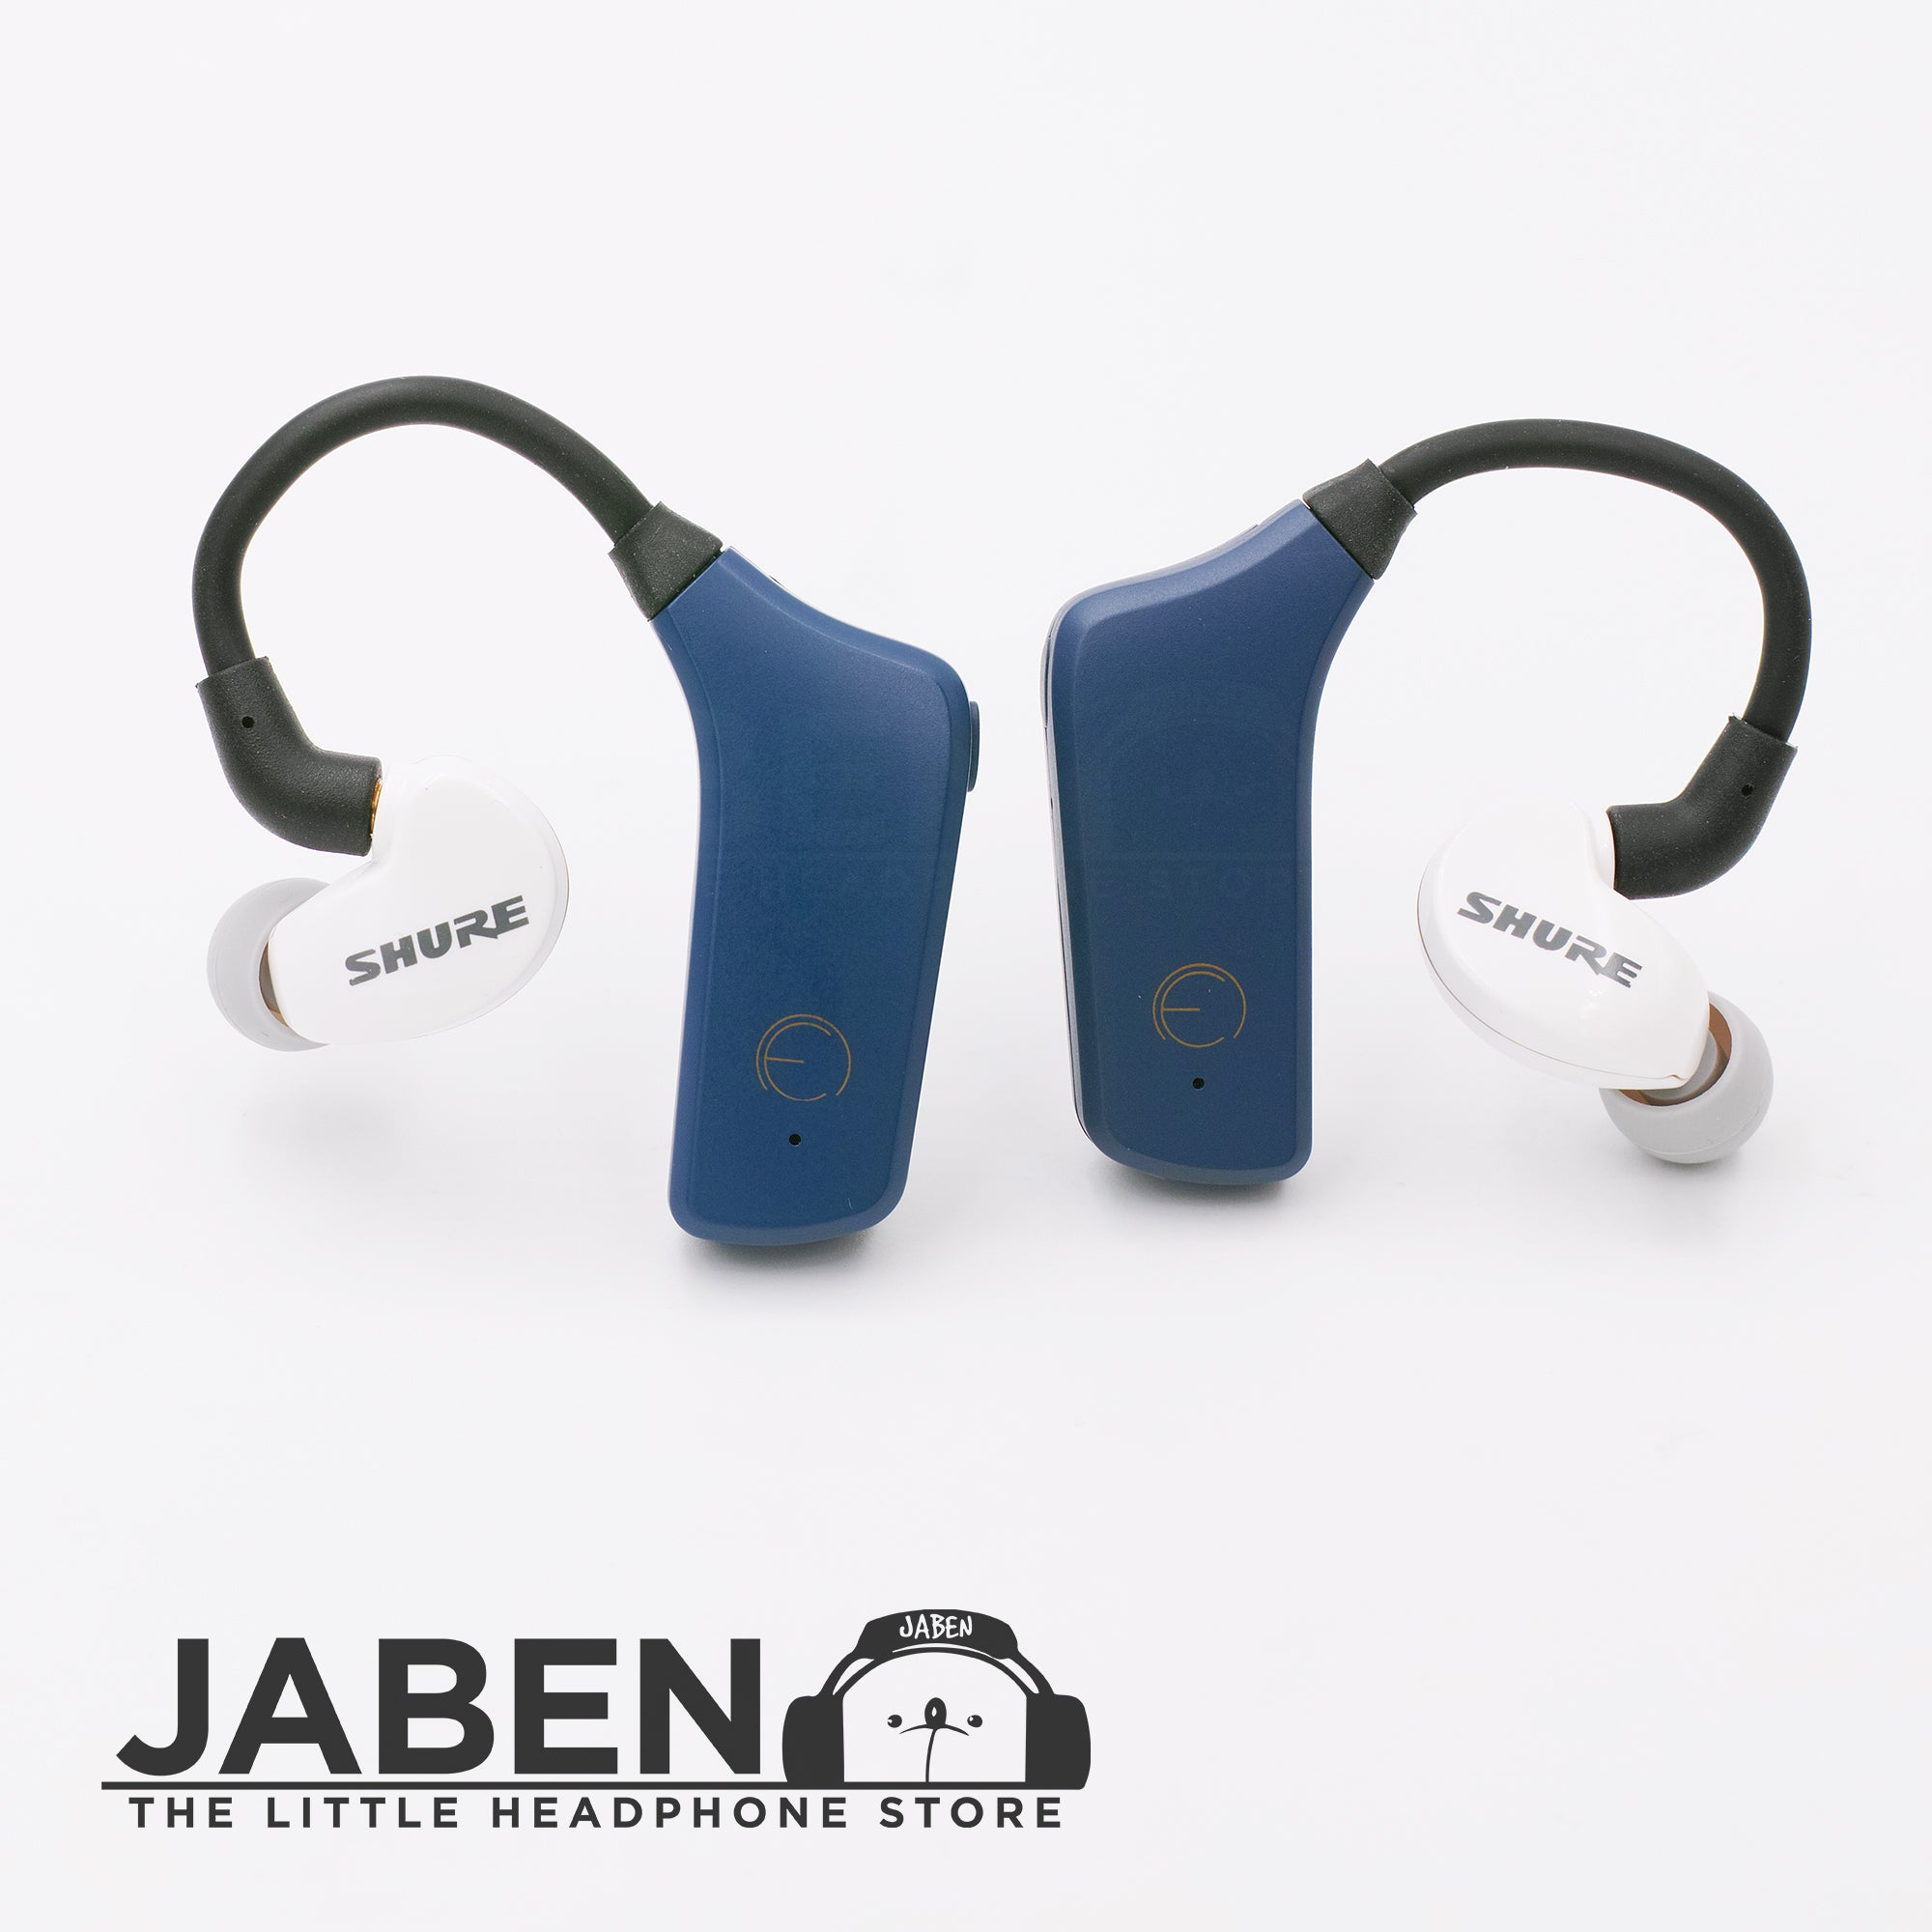 [Jaben Combo] Shure SE215 & OE Audio WS-1 High Fidelity Bluetooth Receiver [Offers ends on 31st July 2020]